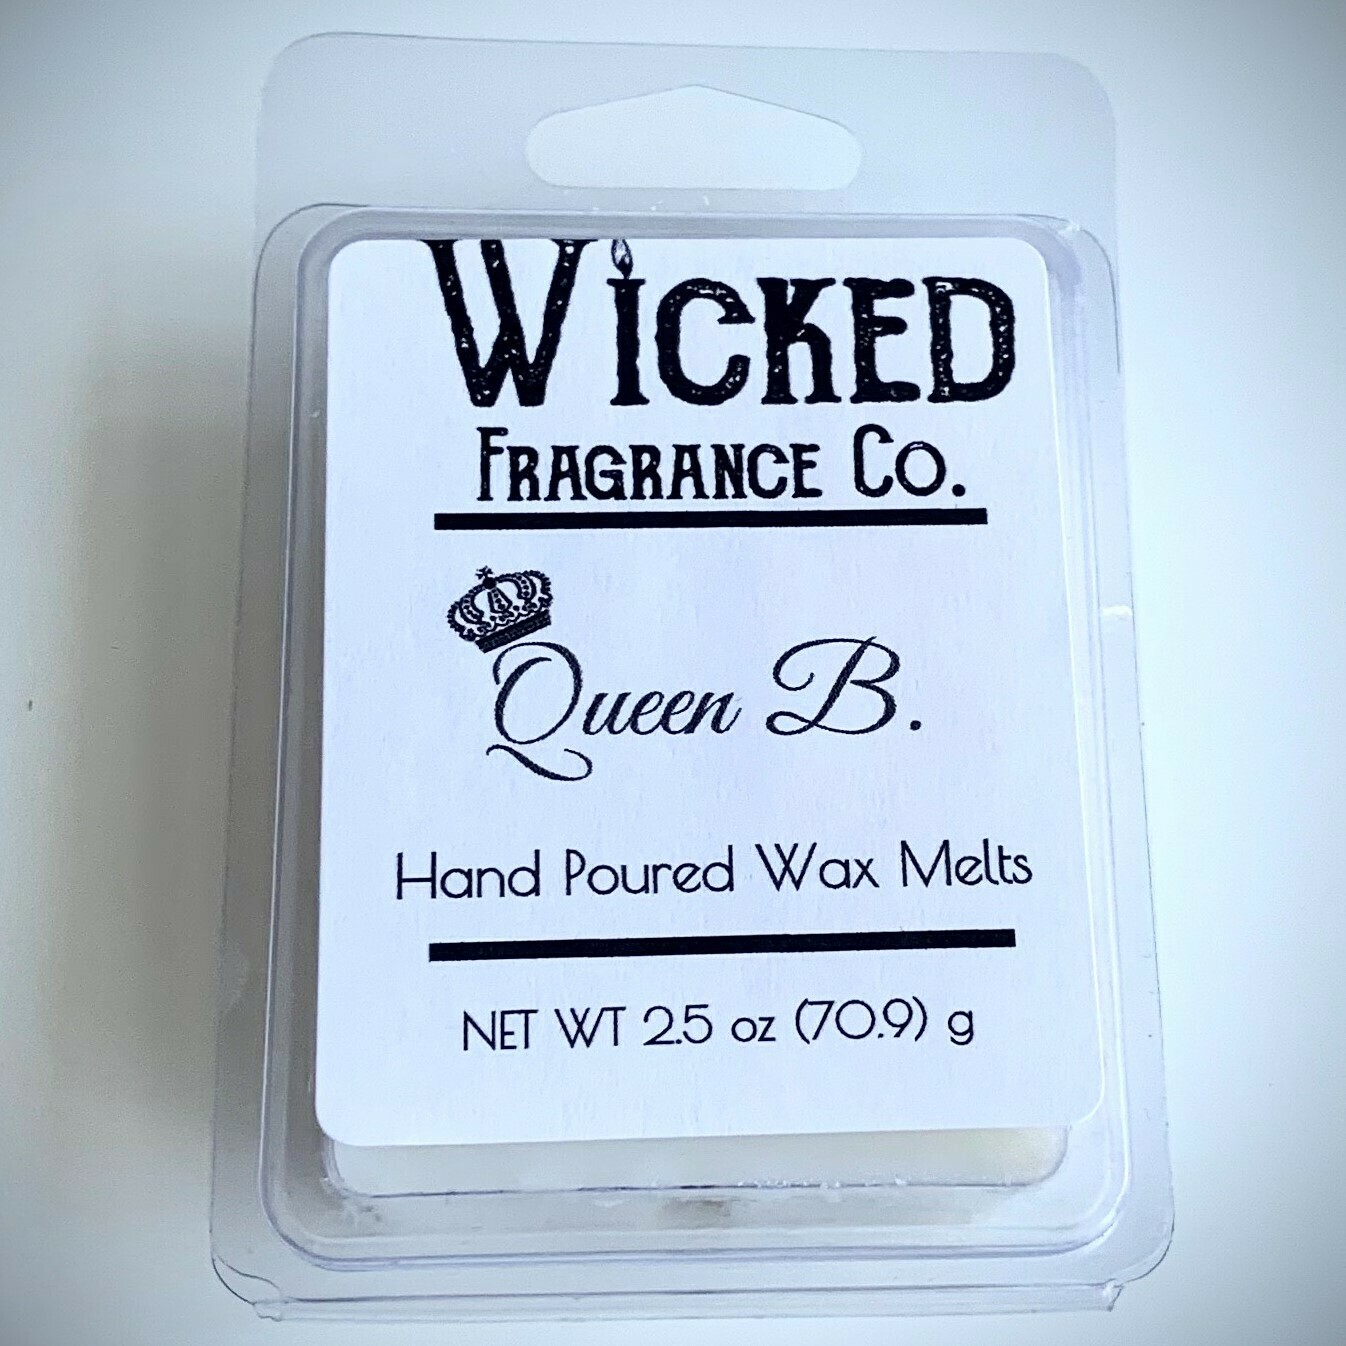 Queen B. Wax Melts